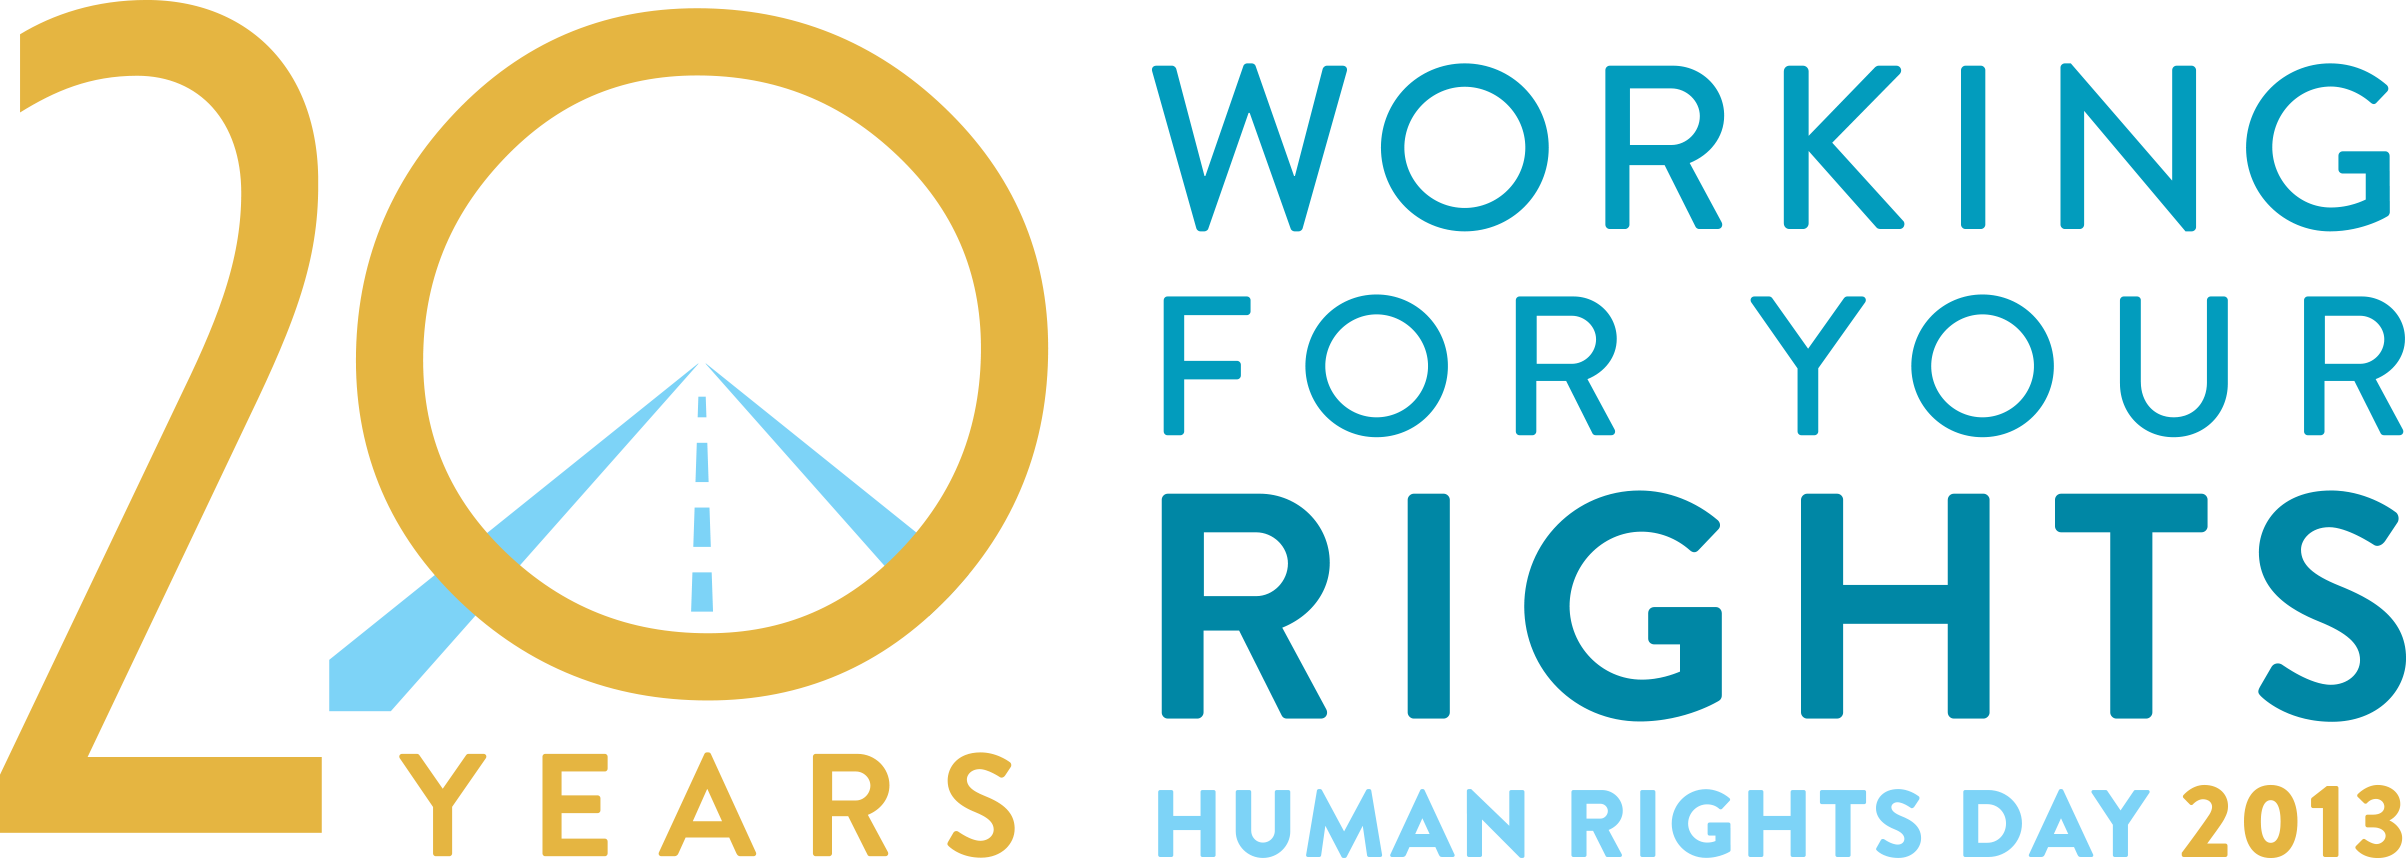 Altrusa Richardson - INT'L RELATIONS: Celebrate Human Rights Day